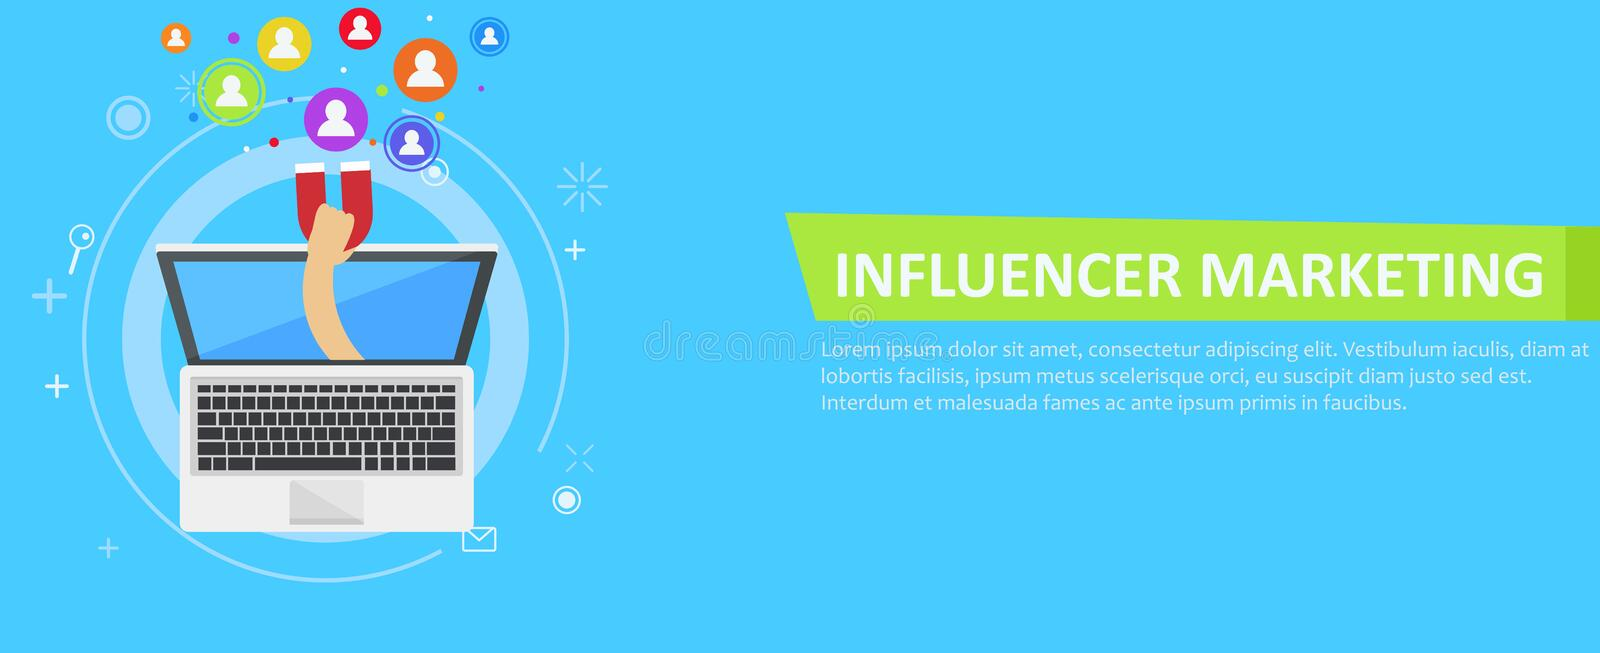 Influencer marketing banner. From the computer comes out a hand with a magnet, calling users. Vector flat illustration vector illustration